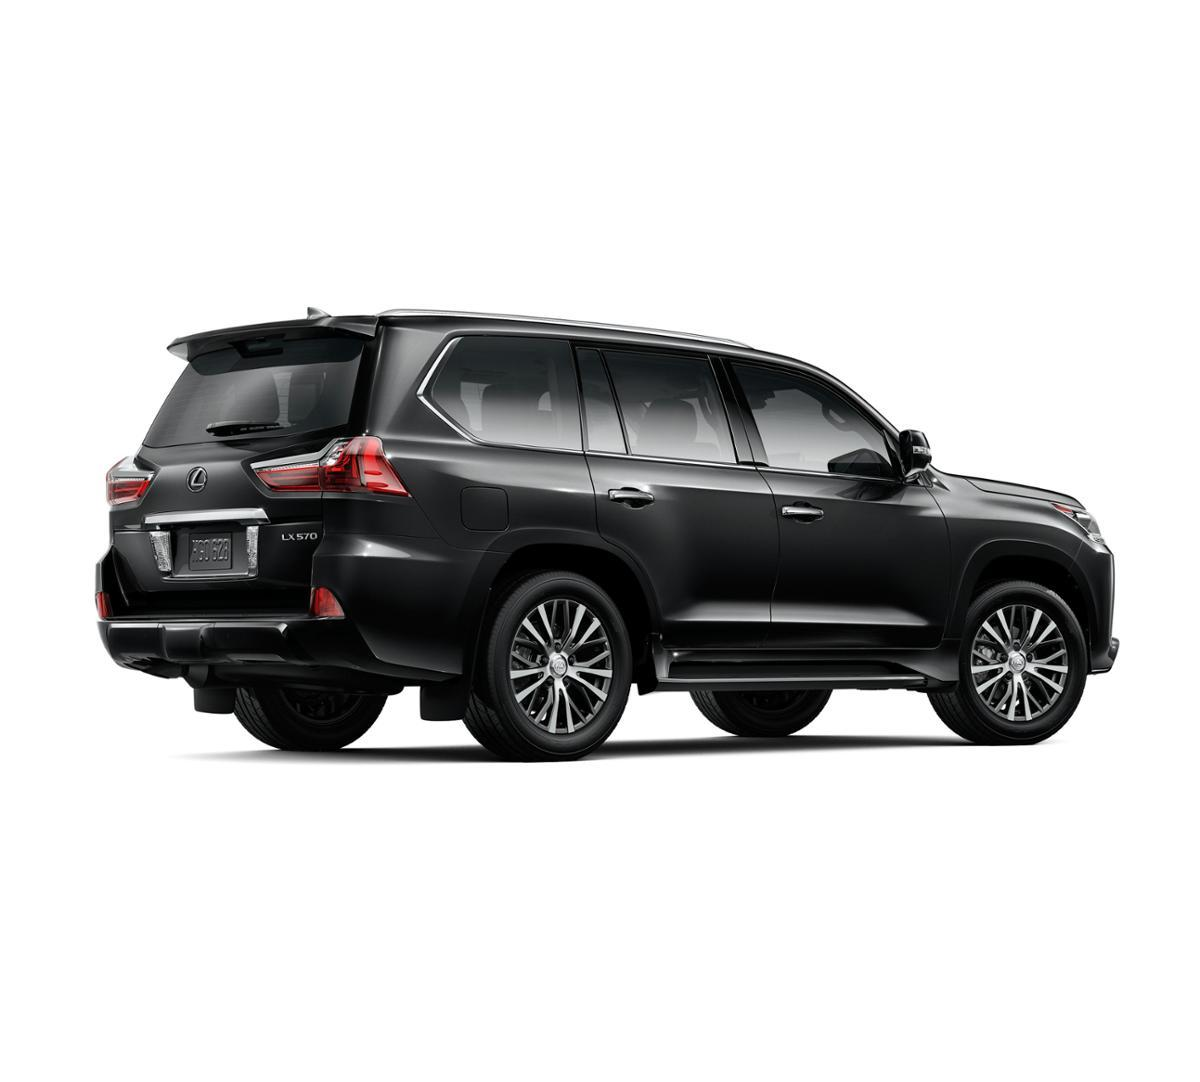 Larry H Miller Lexus >> 2017 Lexus LX 570 from Larry H. Miller Lexus Murray - Ask for Stock %L8214A